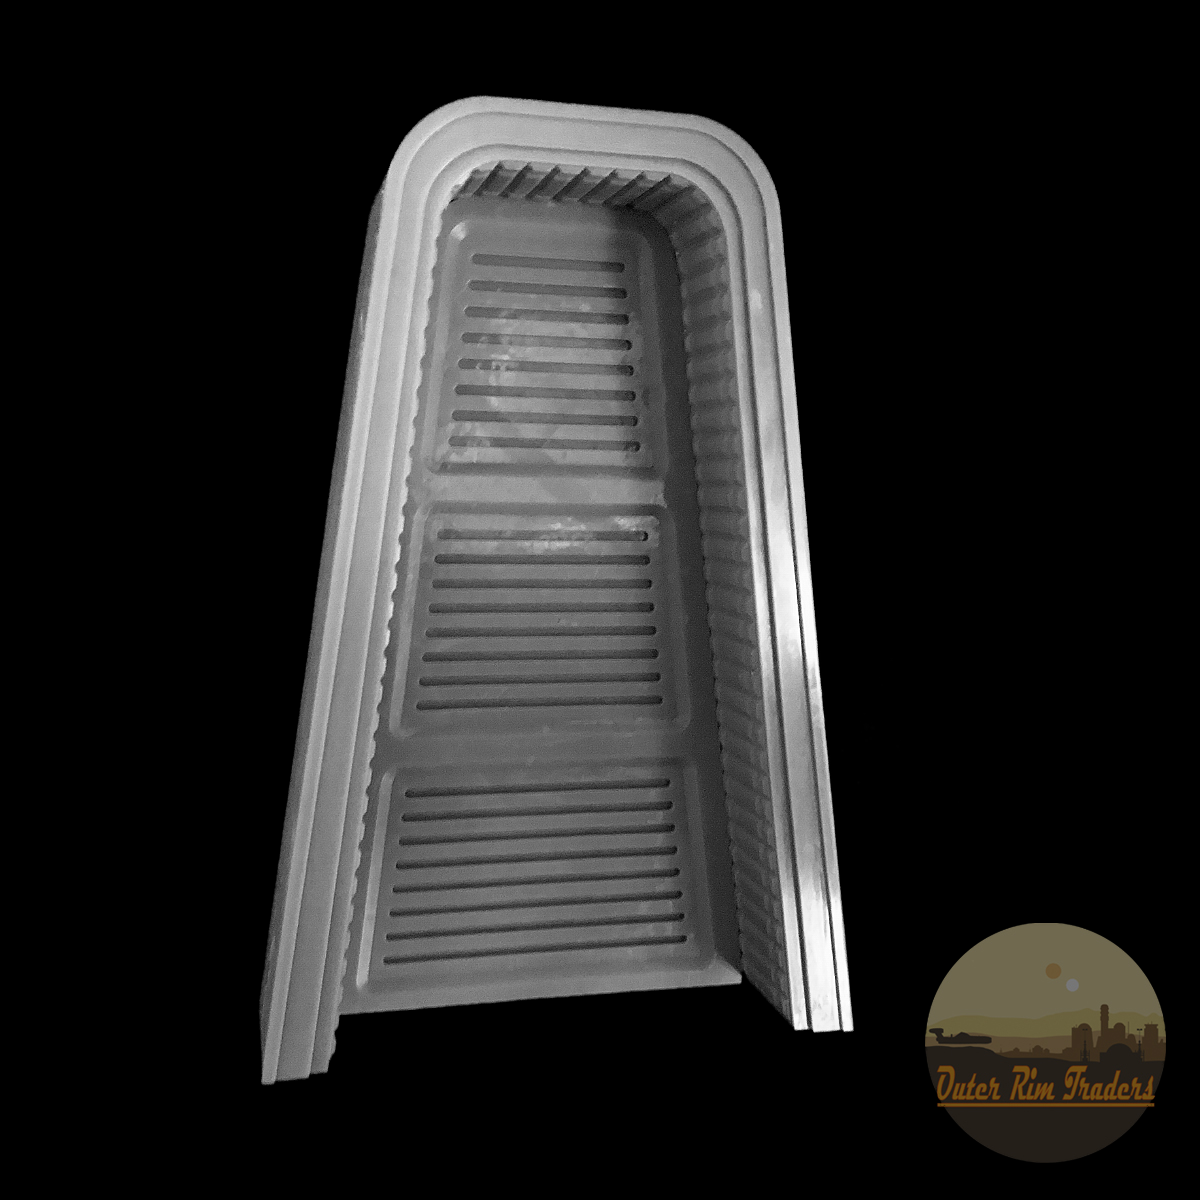 Image of Angled door with separate threshold modeled by Inprintcondition